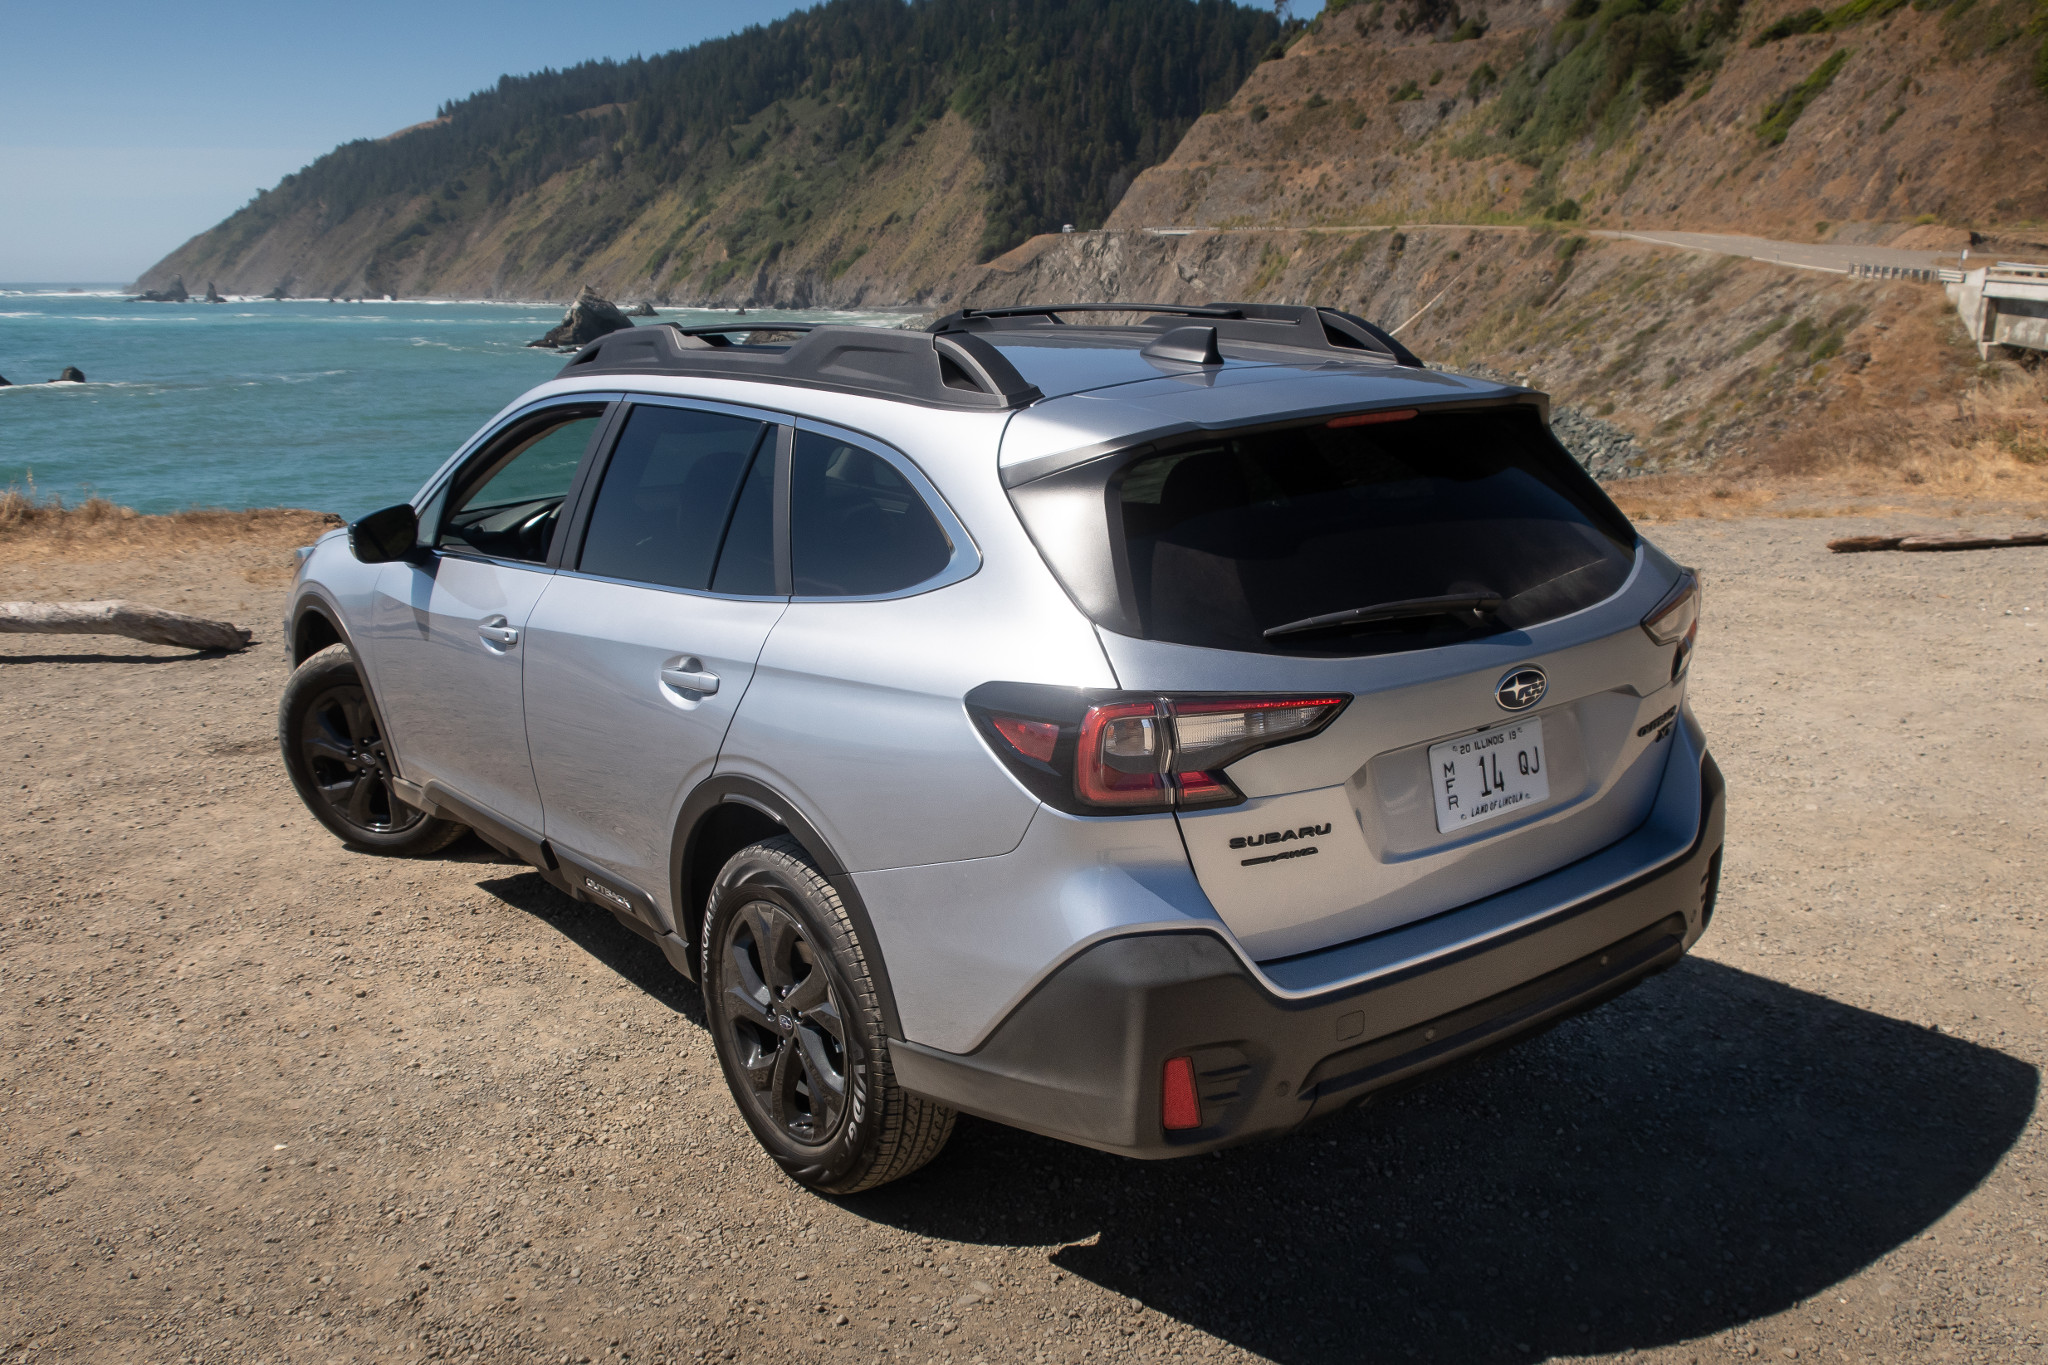 2020 Subaru Outback: Everything You Need to Know